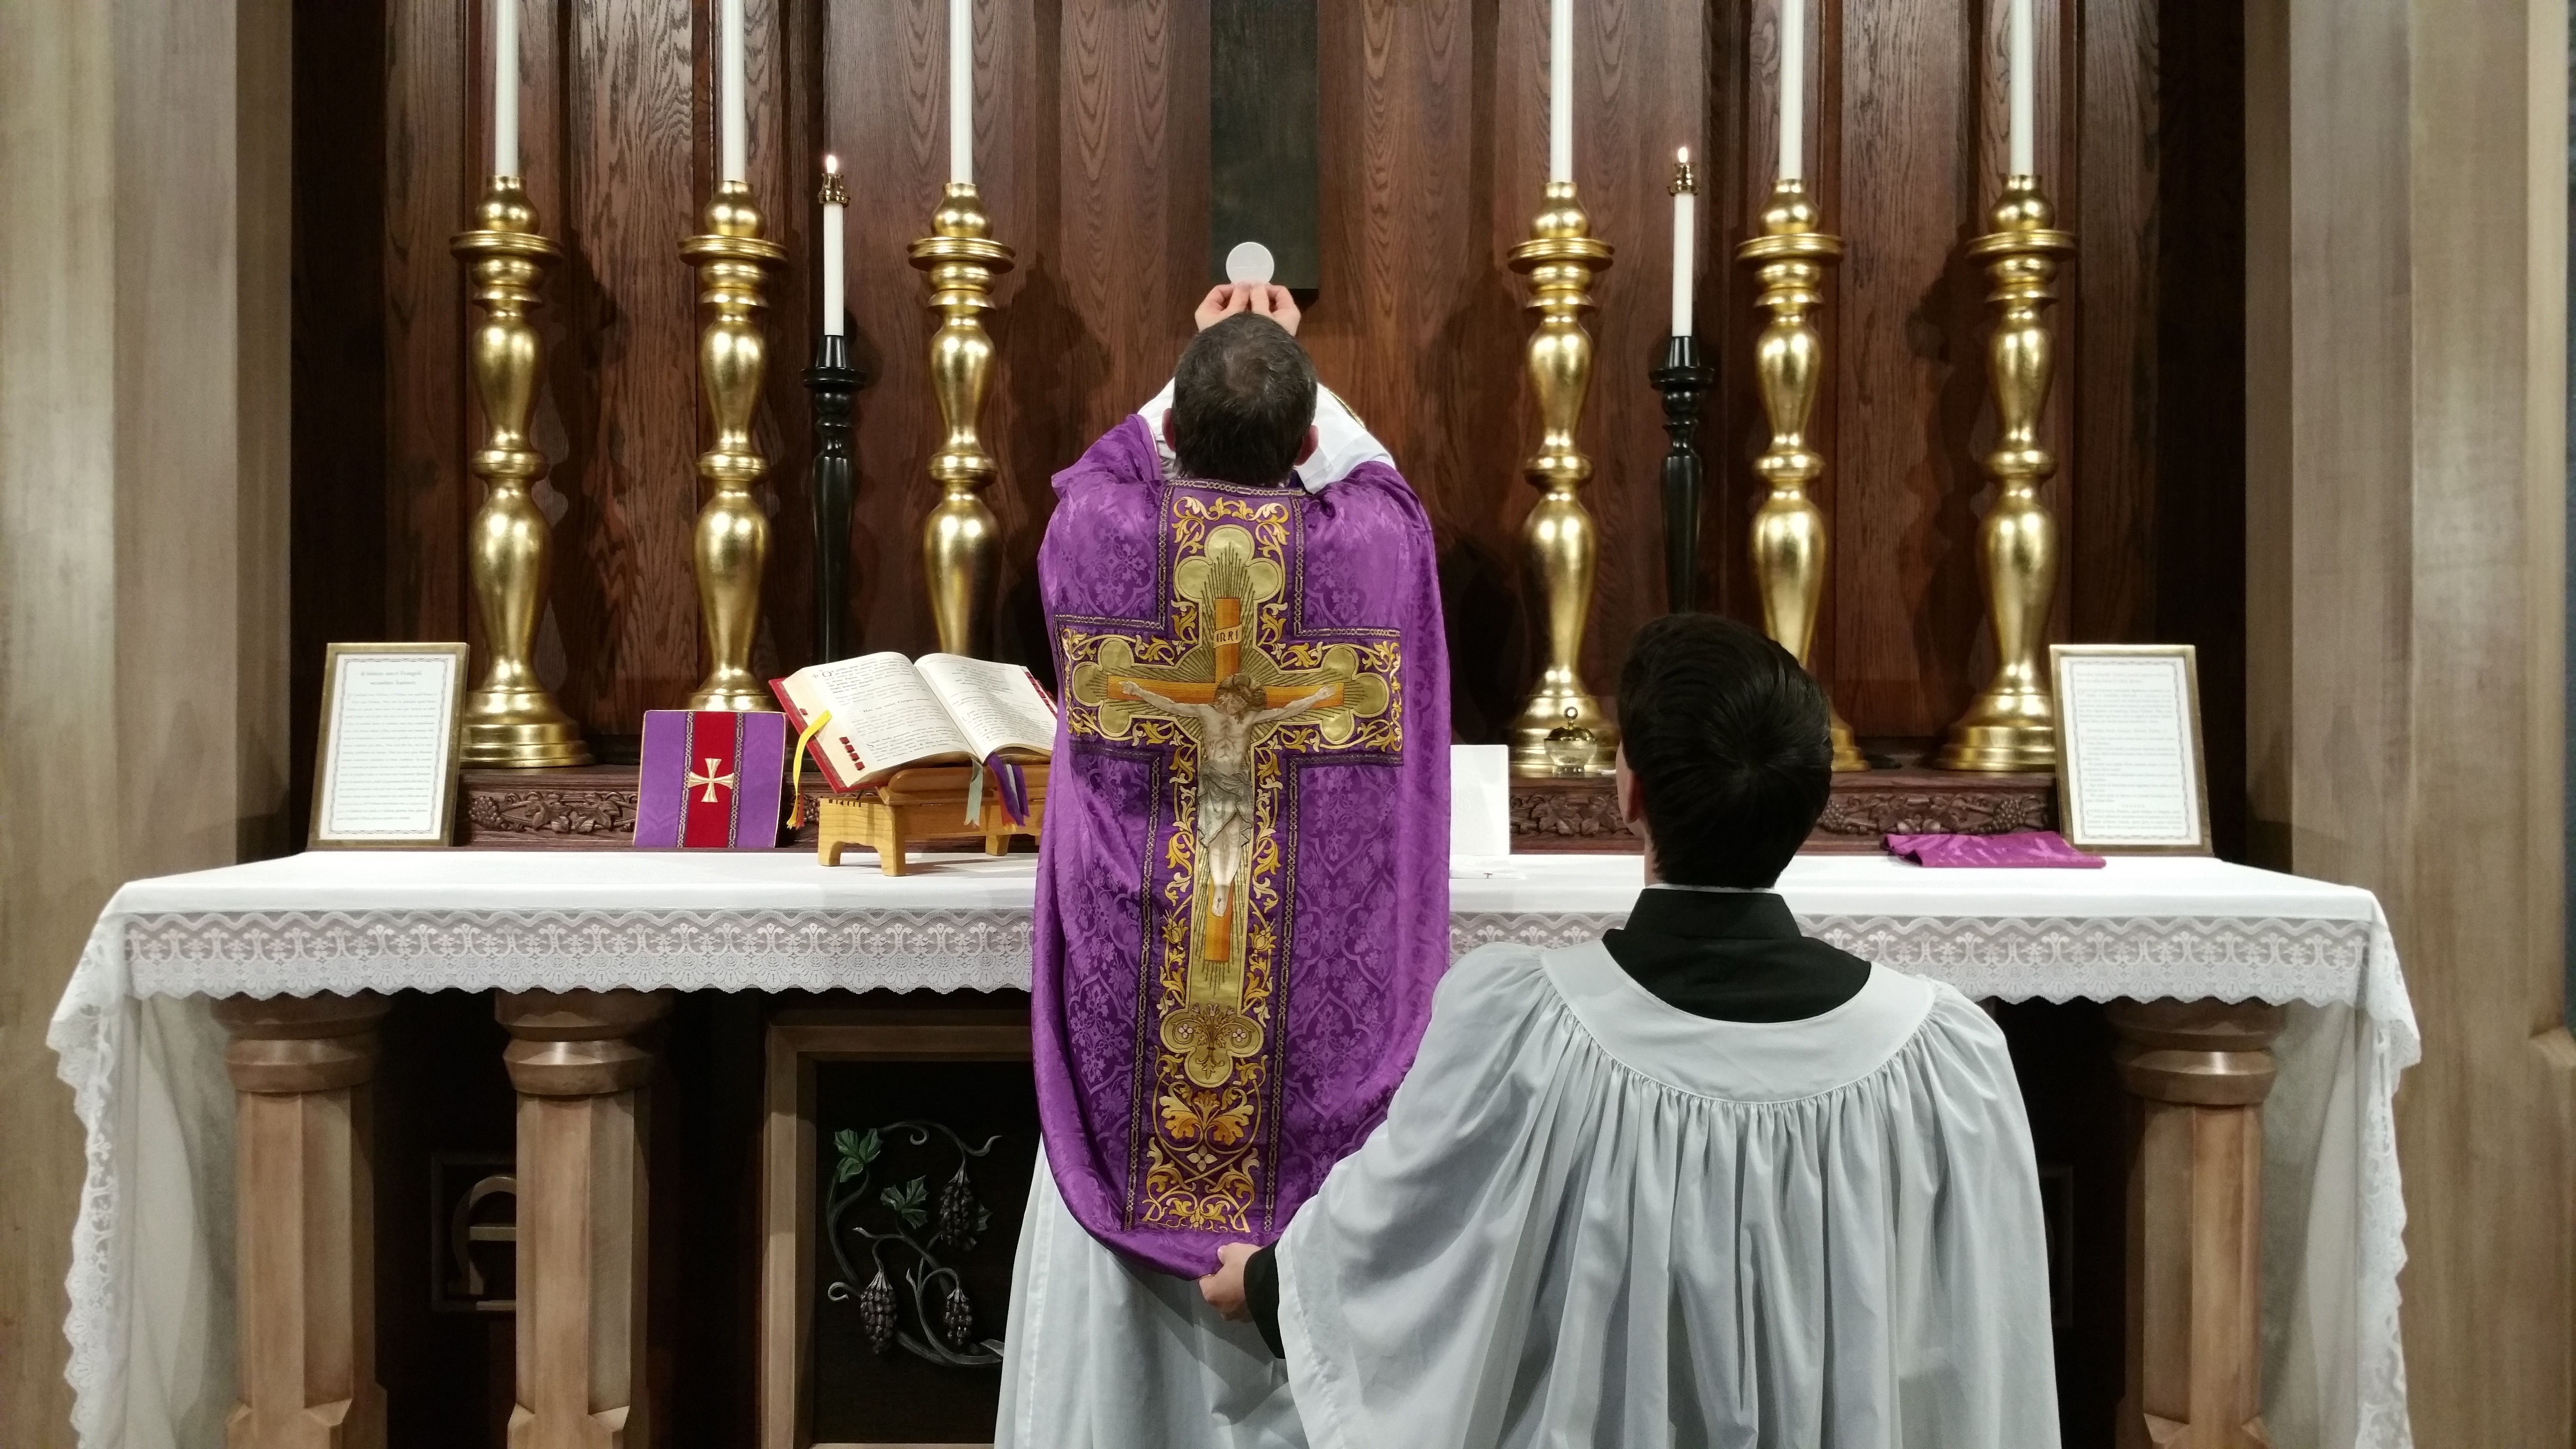 Latin Mass Fans Celebrate 10 Year Anniversary In Rome